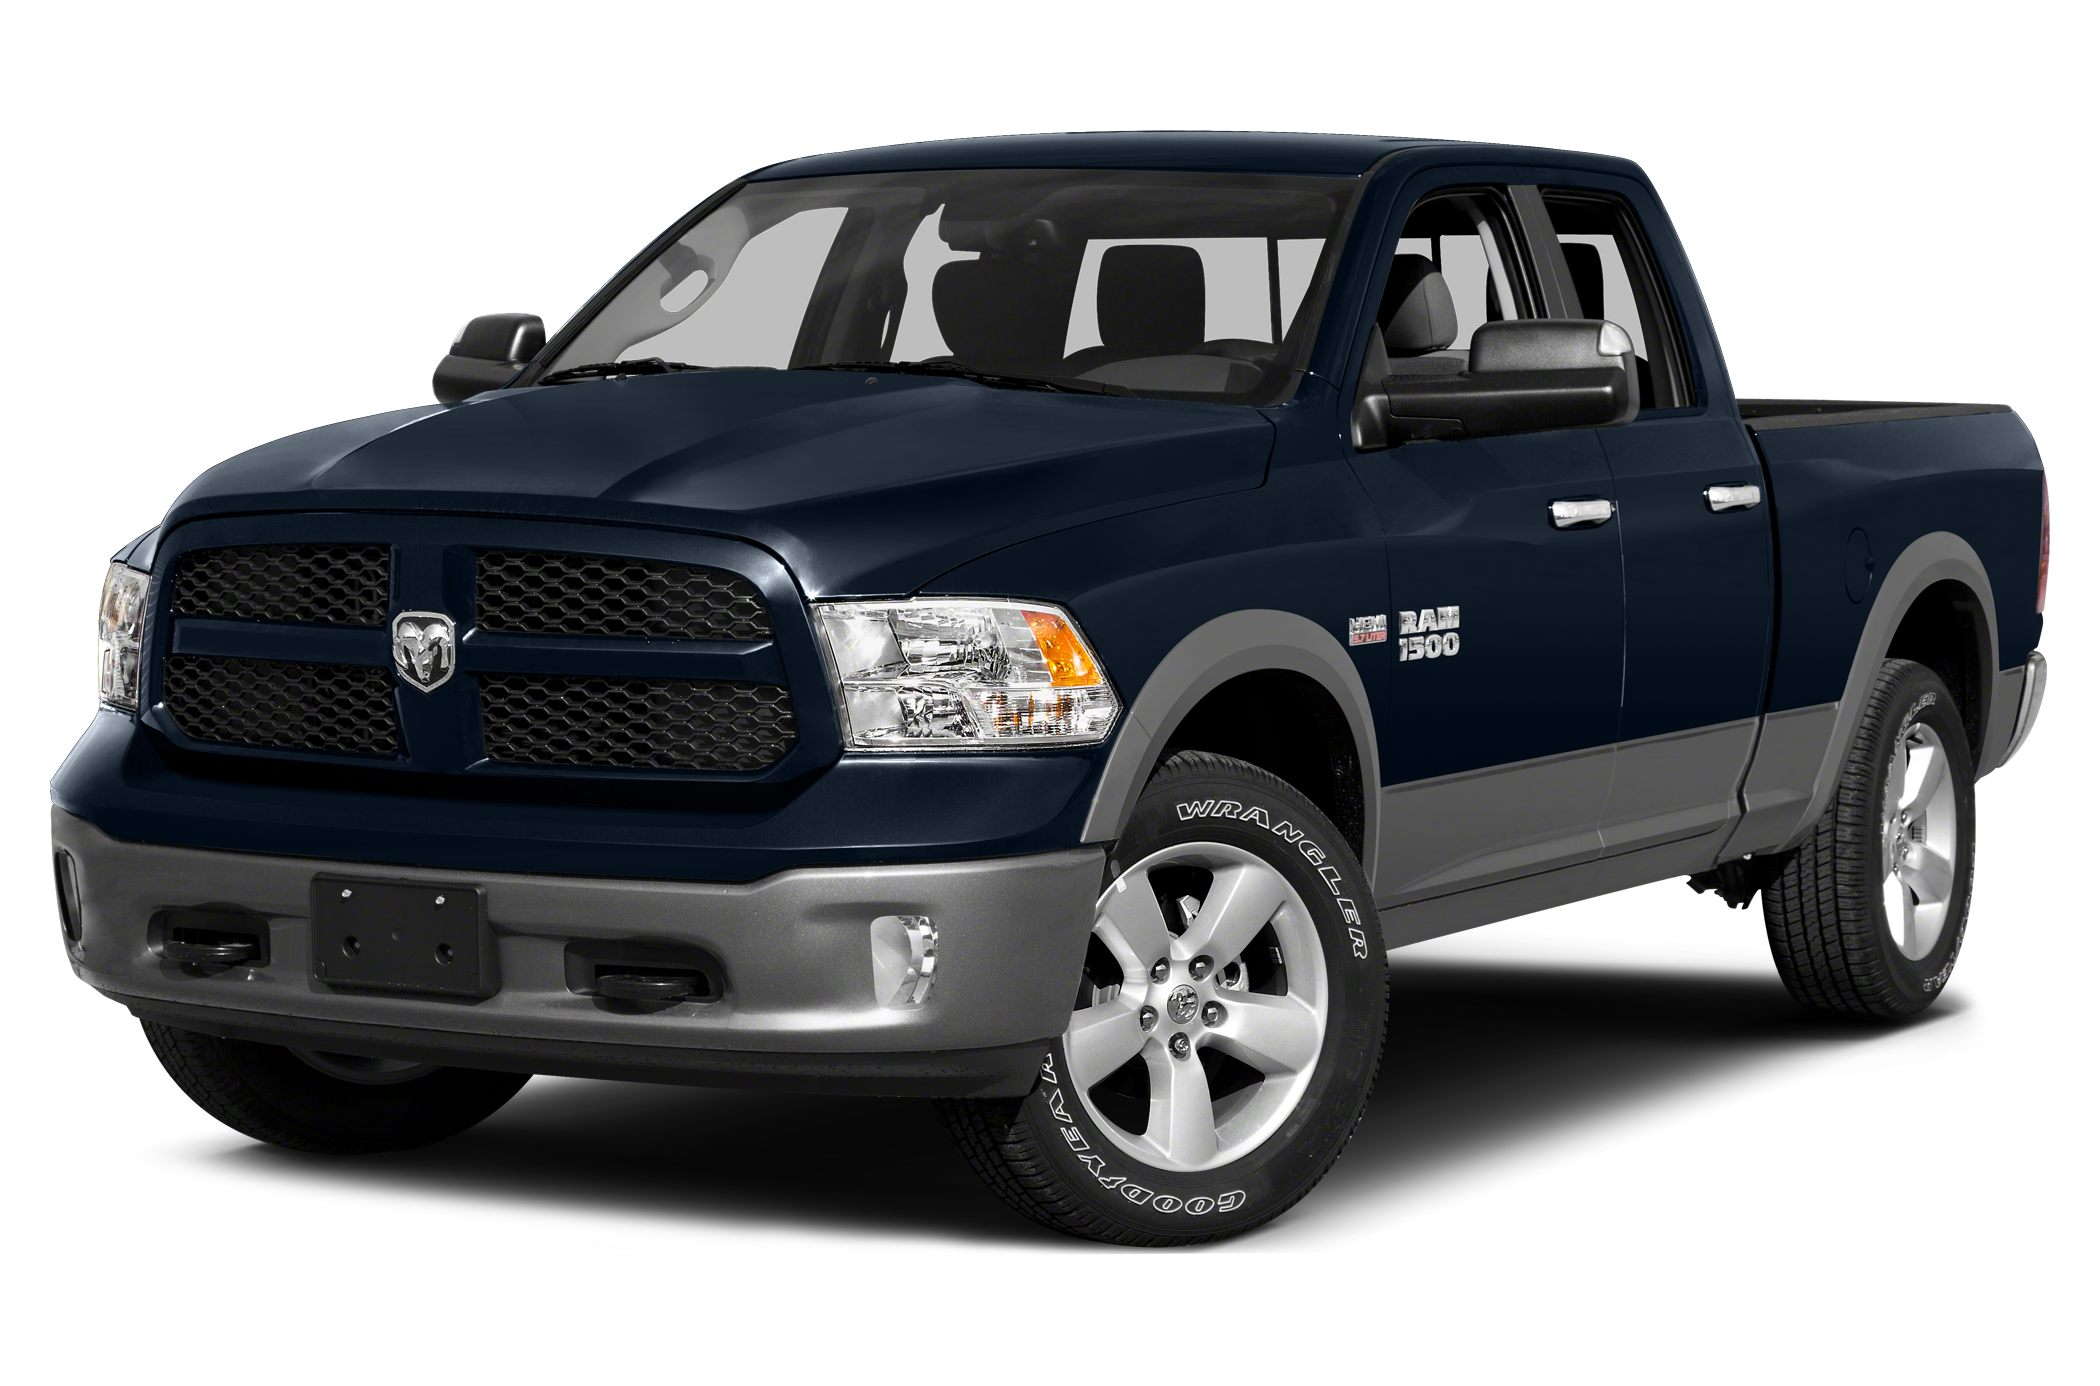 2015 RAM 1500 Laramie Crew Cab Pickup for sale in Ruidoso for $54,145 with 4 miles